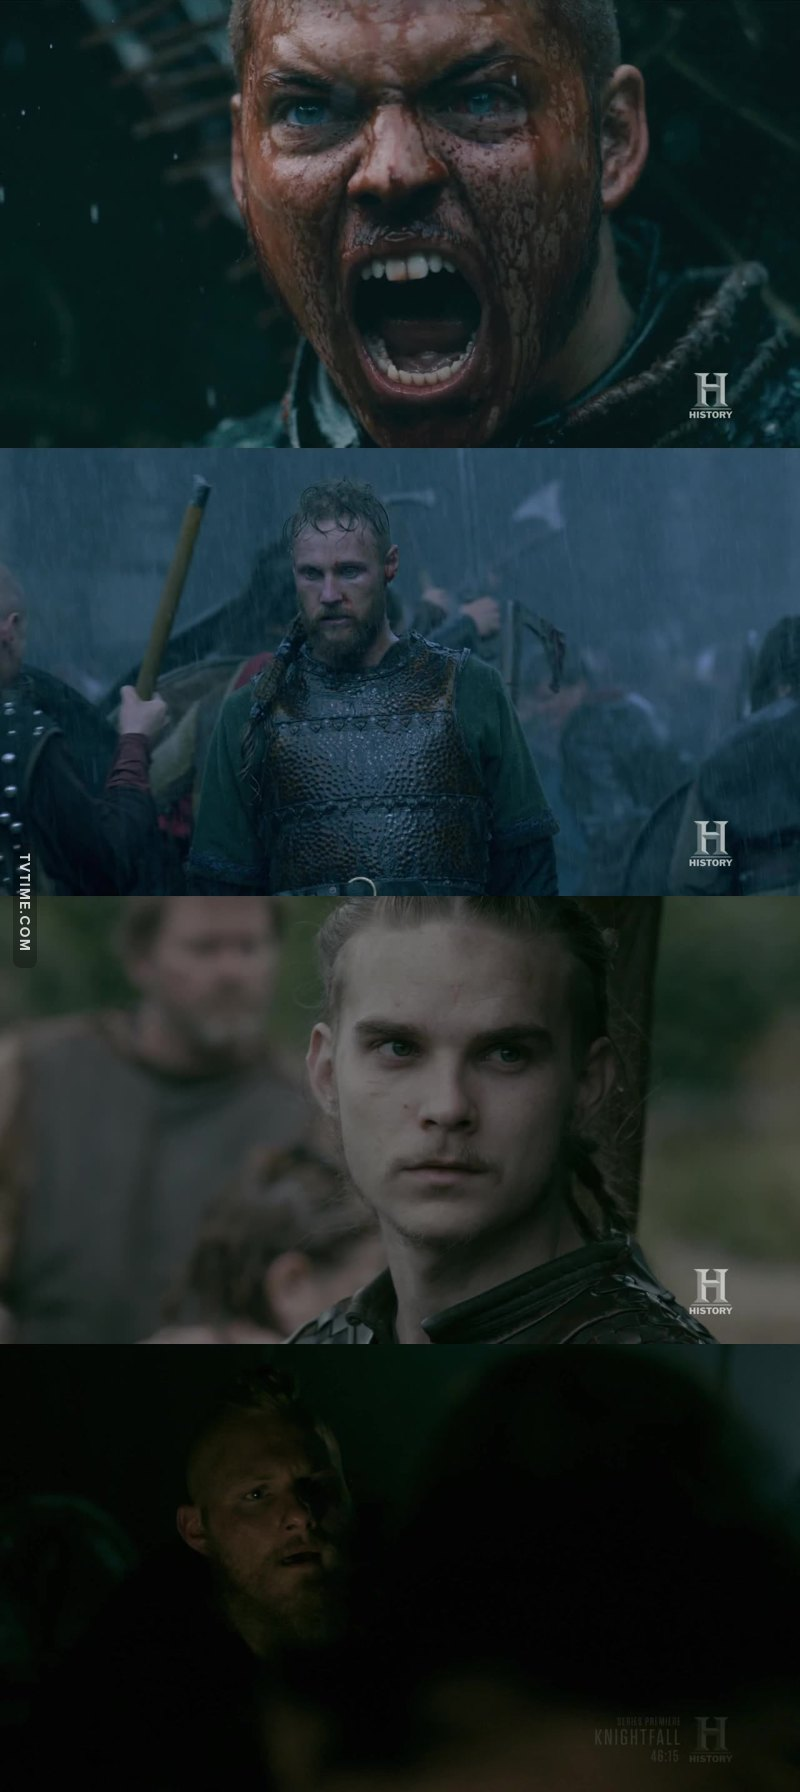 I see a part of Ragnar in all of them